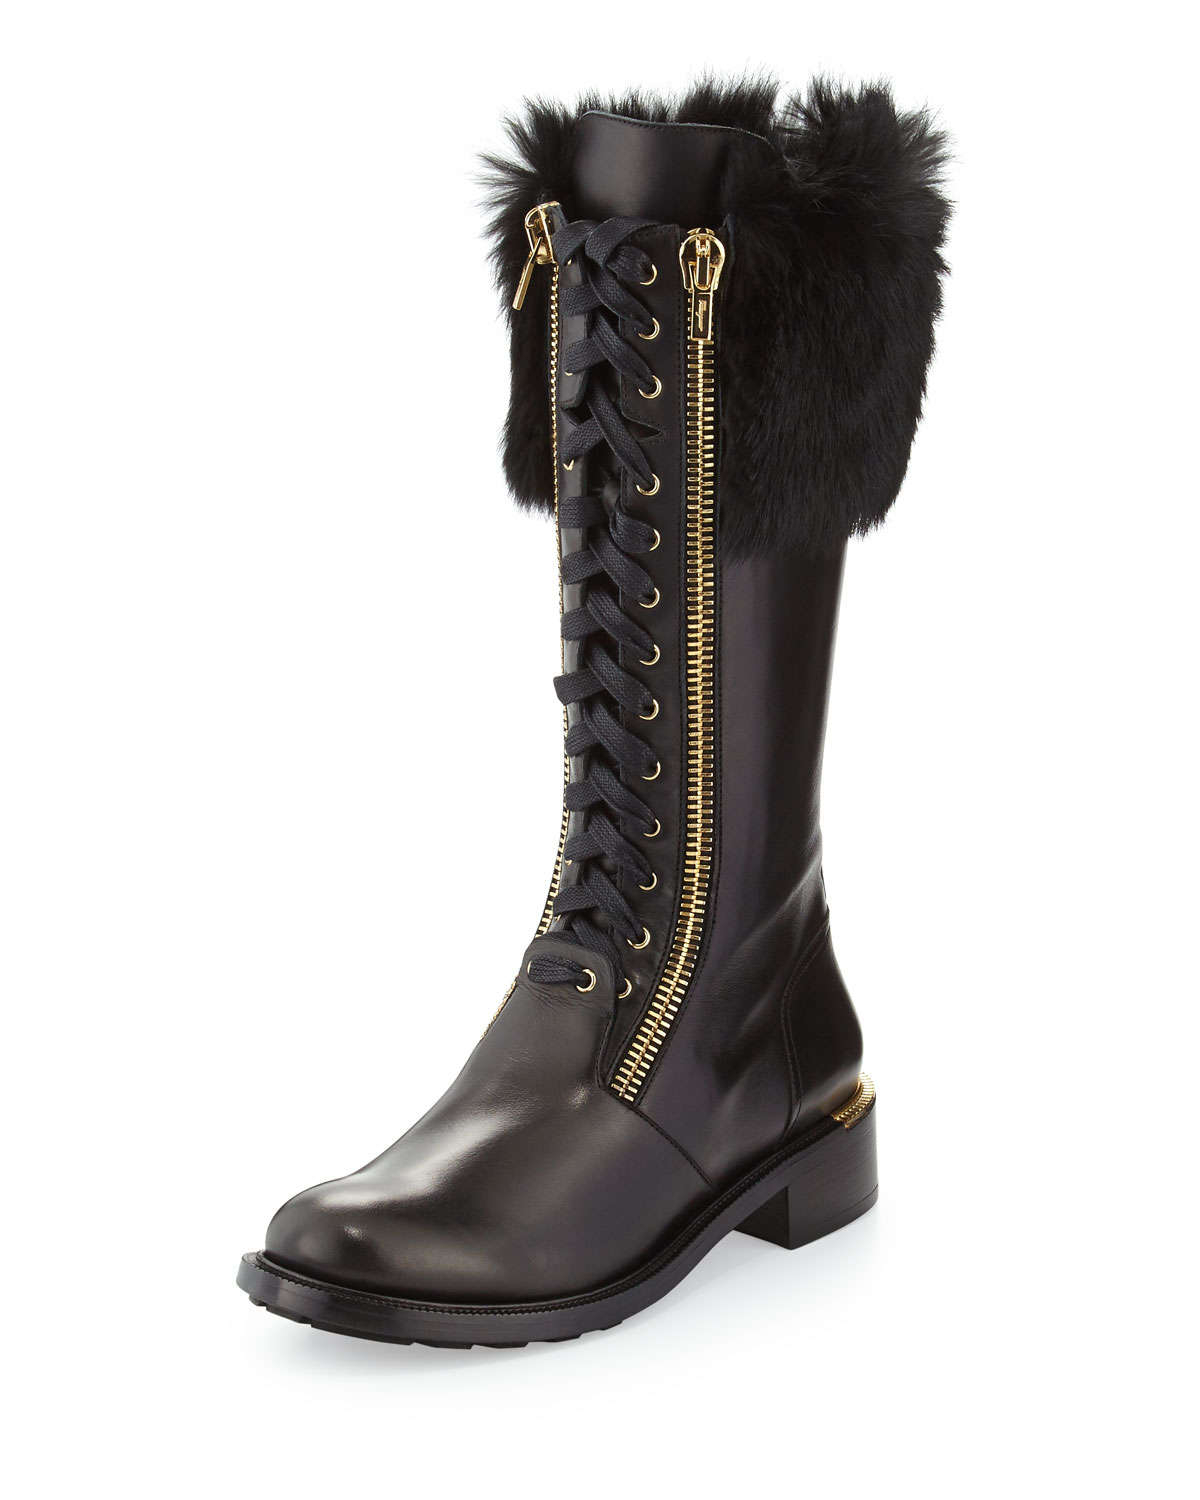 Find great deals on eBay for black boots and black boots size 5. Shop with confidence.